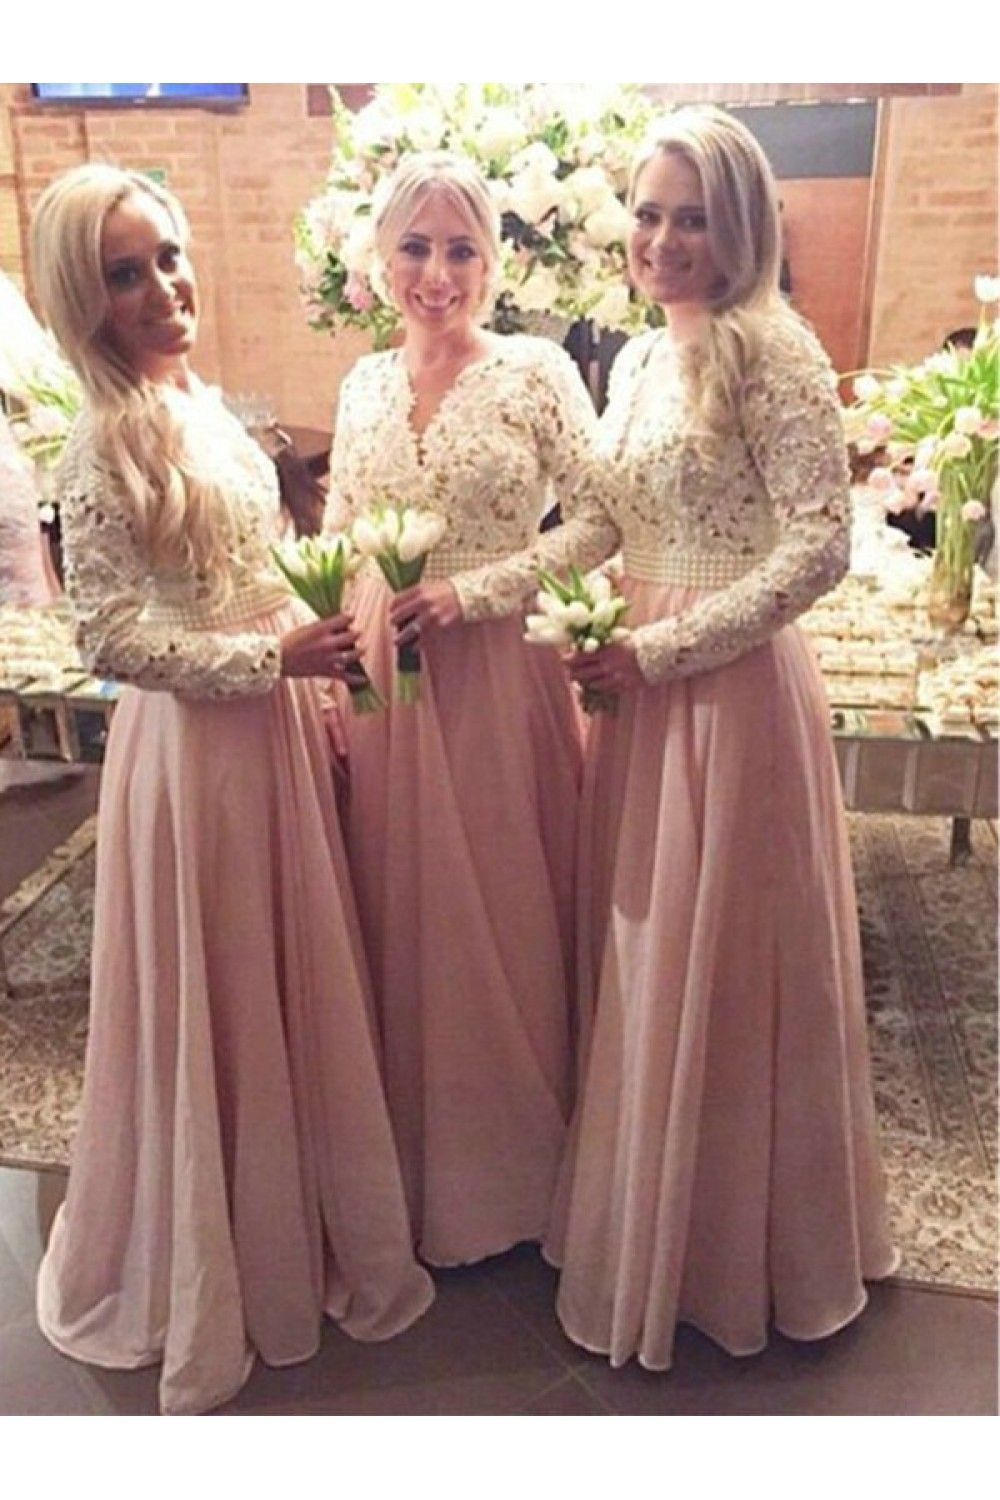 A Line Beaded Long Pink Lace Floor Length Bridesmaid Dresses 3010412 In 2020 Long Sleeve Bridesmaid Dress Lace Chiffon Bridesmaid Dress Lace Bridesmaid Dresses